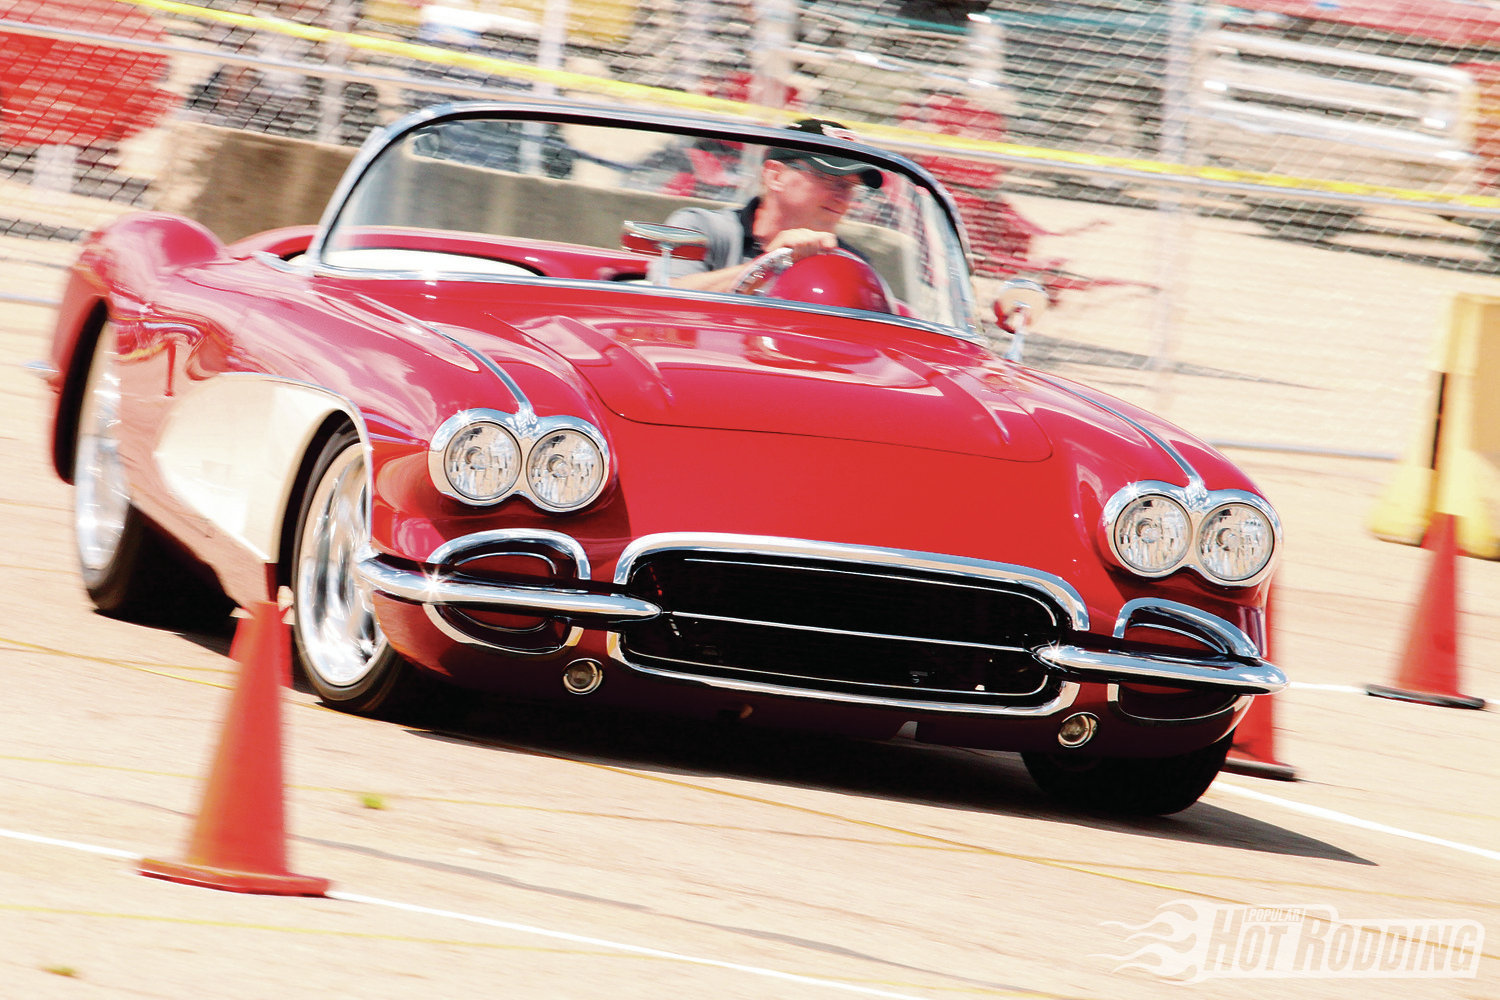 Ron Sall's stunning 1959 Corvette was also up for SMOTY honors, and eagerly attacked the course with its sticky C4 suspension. The power team includes an LS1 crate motor, Tremec six-speed, and a Ford 9-inch rear with 3.55 gears.